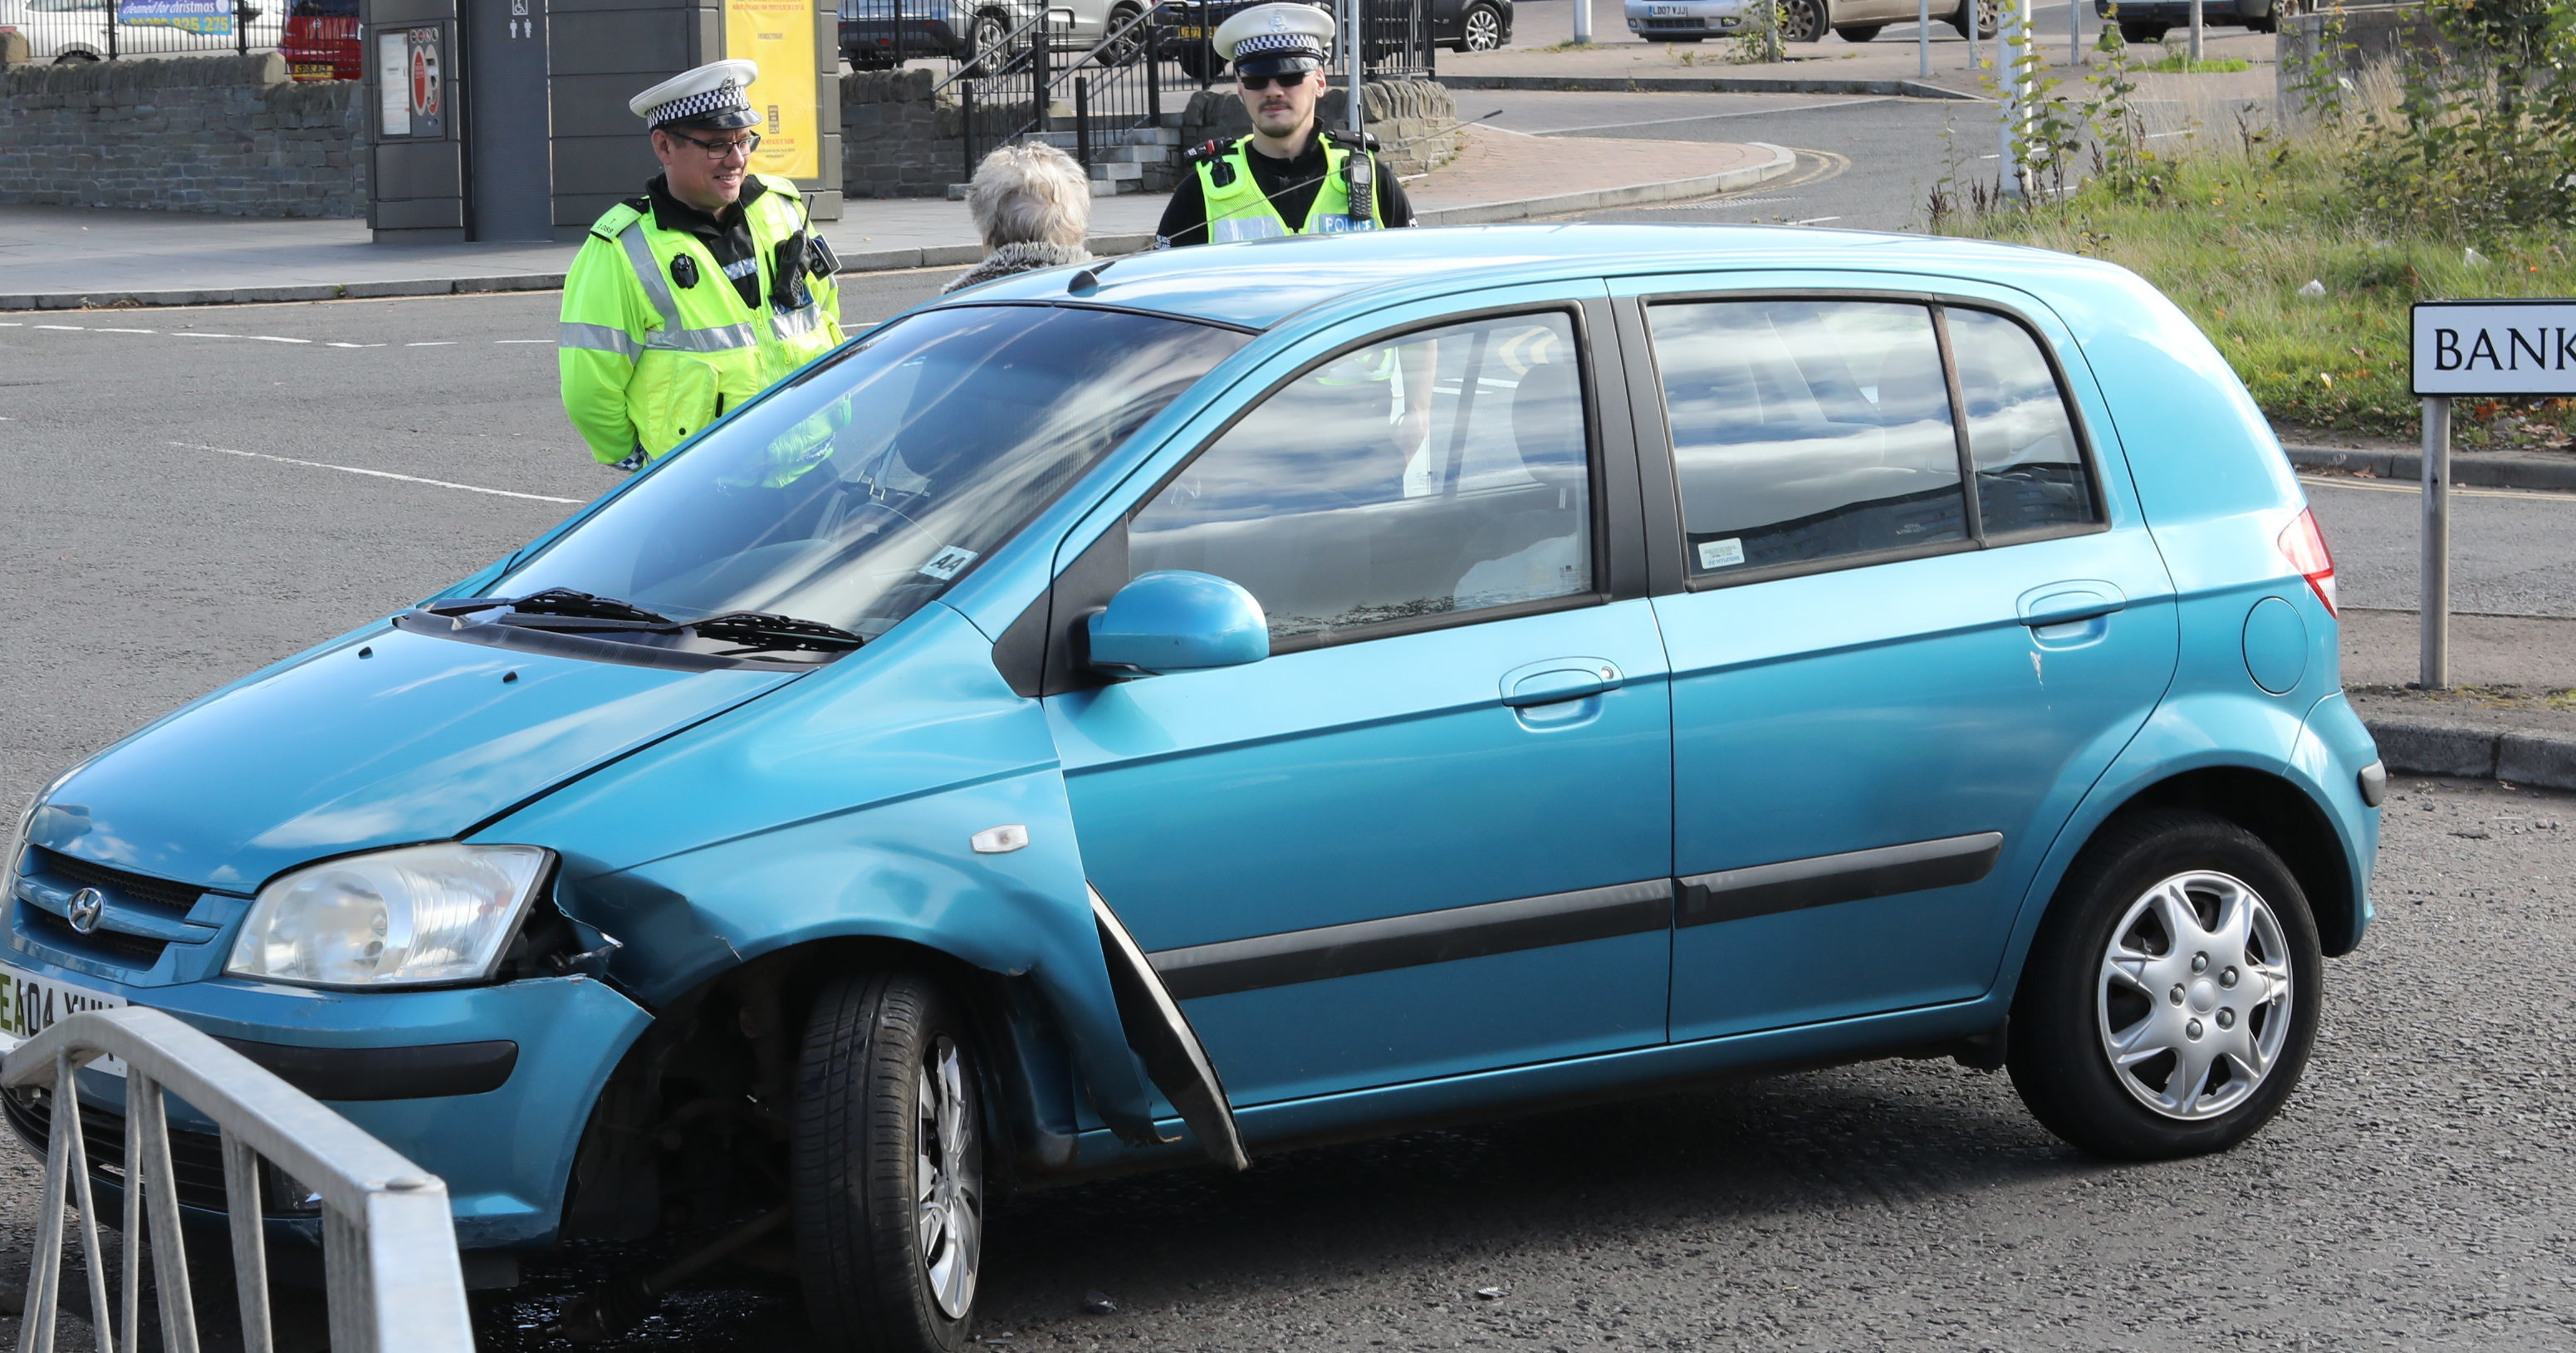 Police on the scene after a crash closed a the road eastbound between Bank Street and High Street Lochee